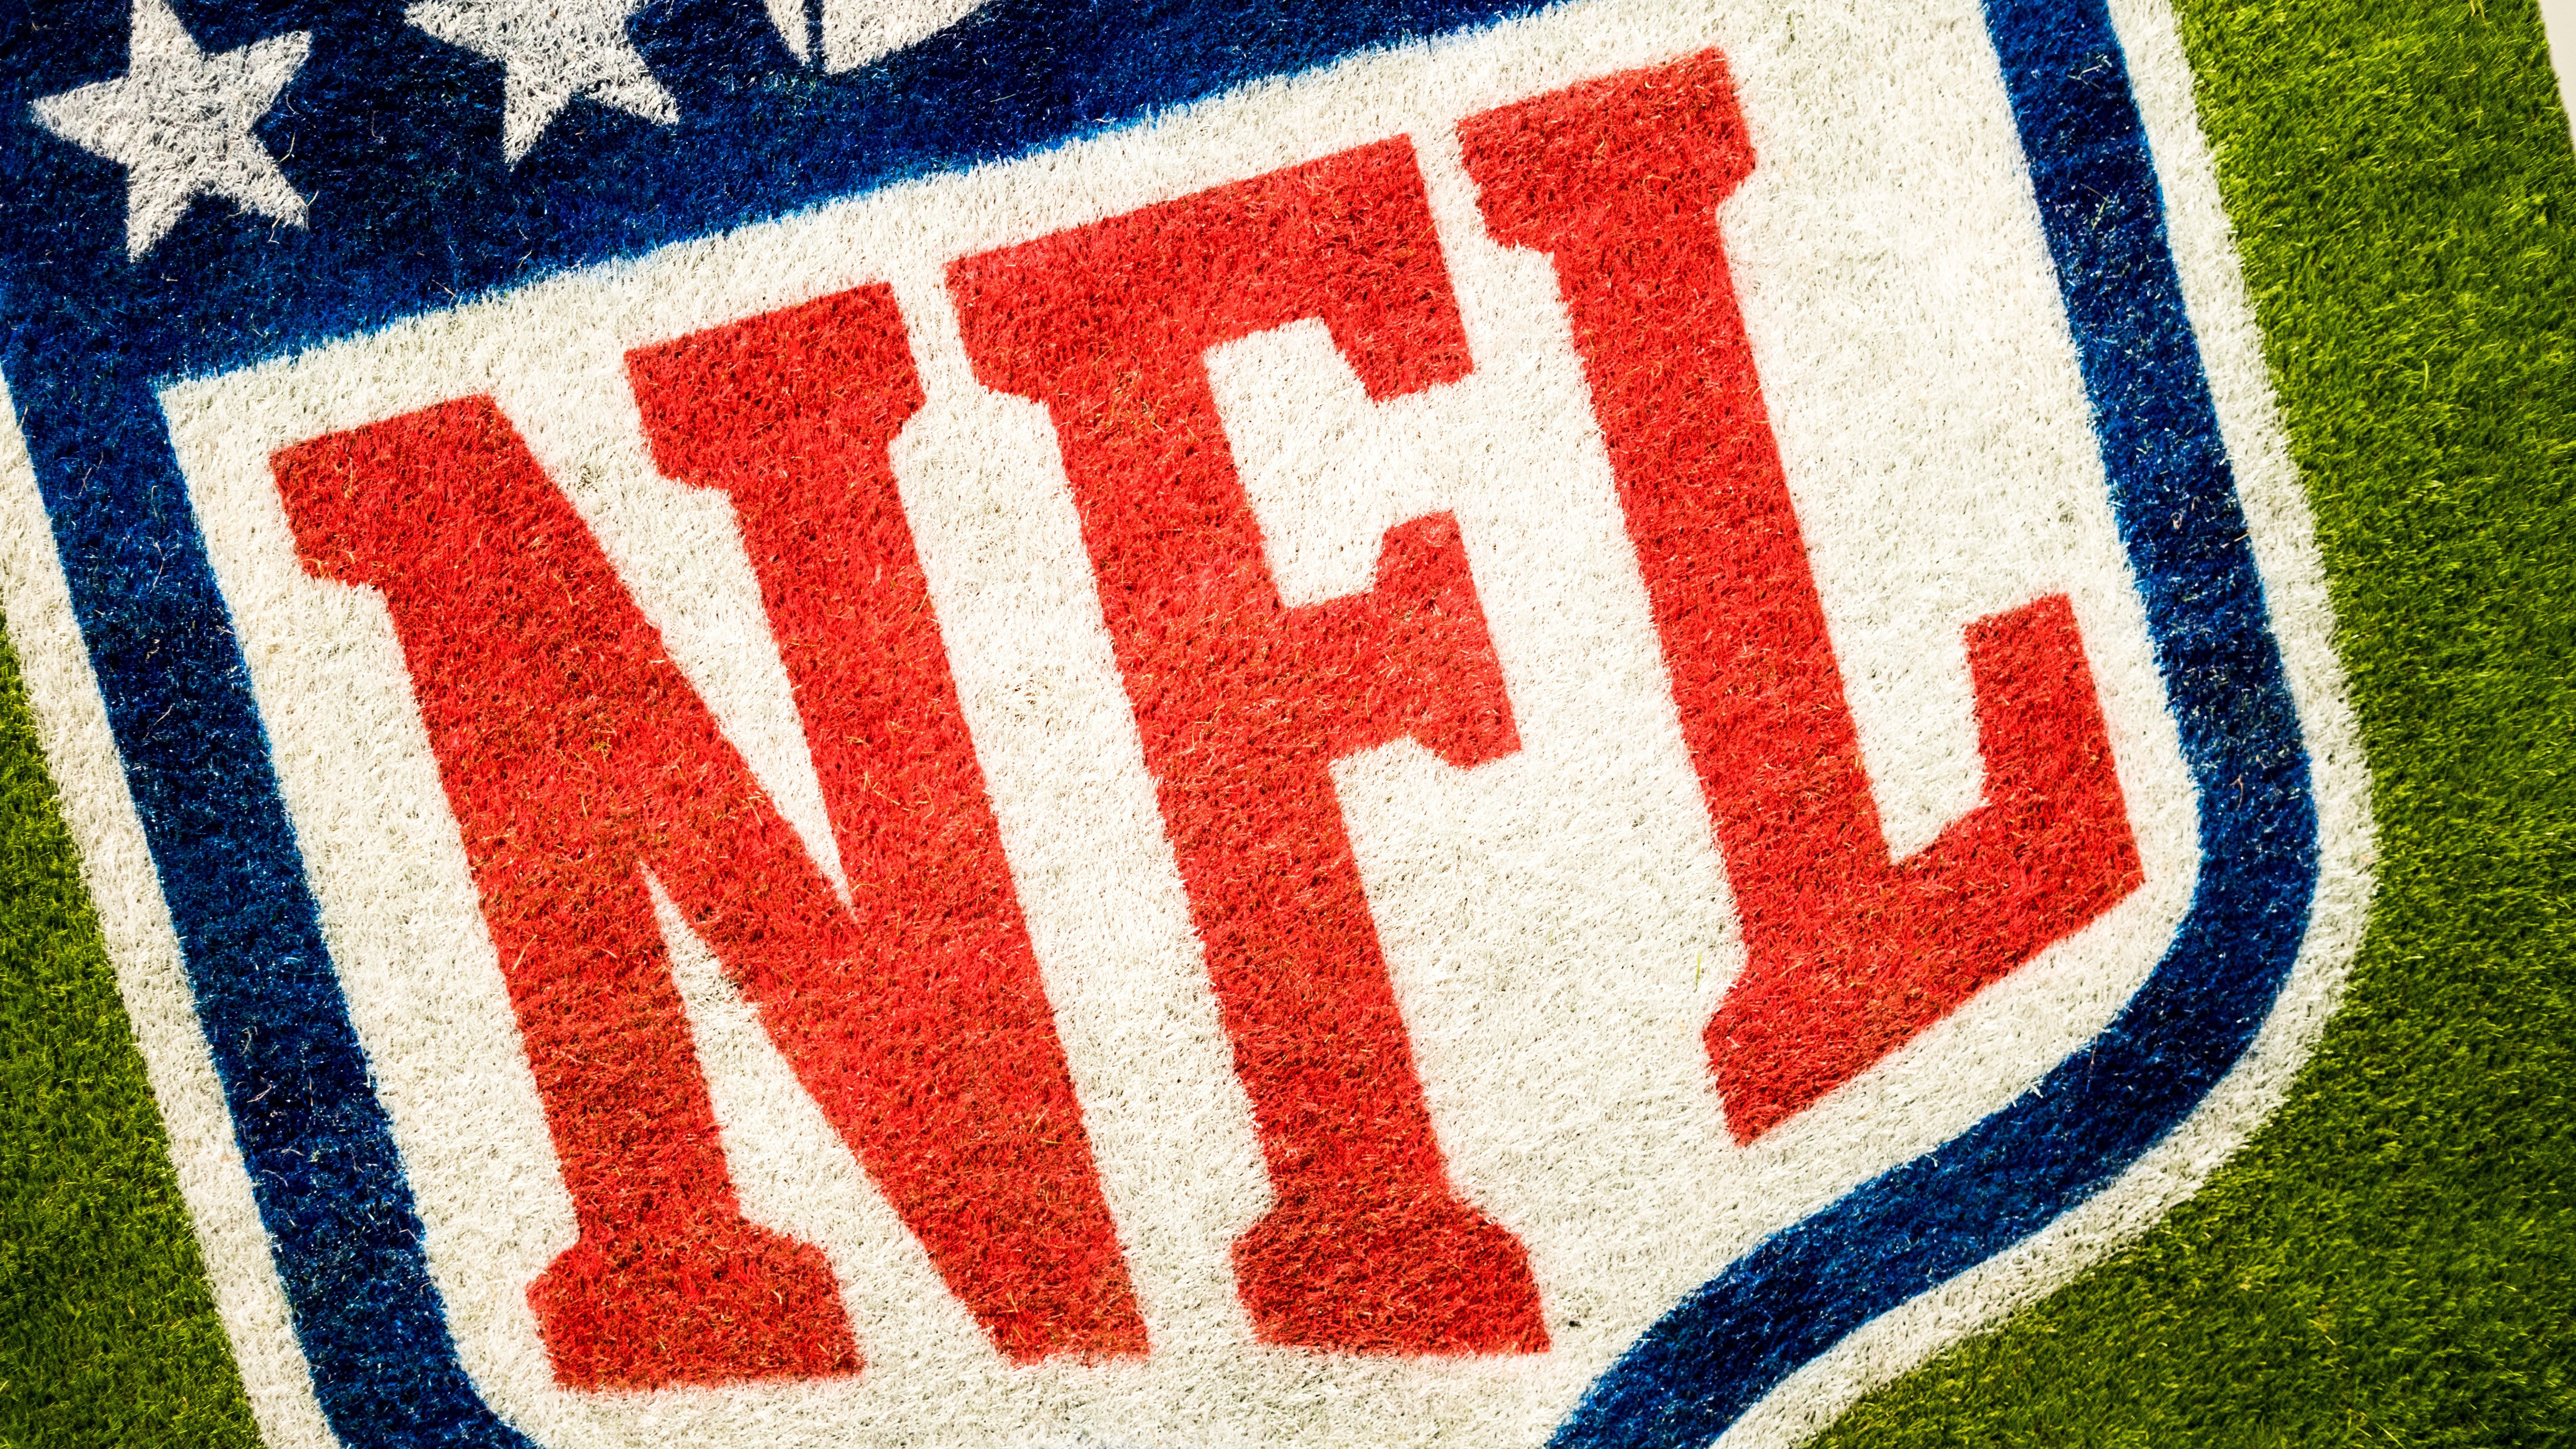 aerial photography of NFL logo printed on field